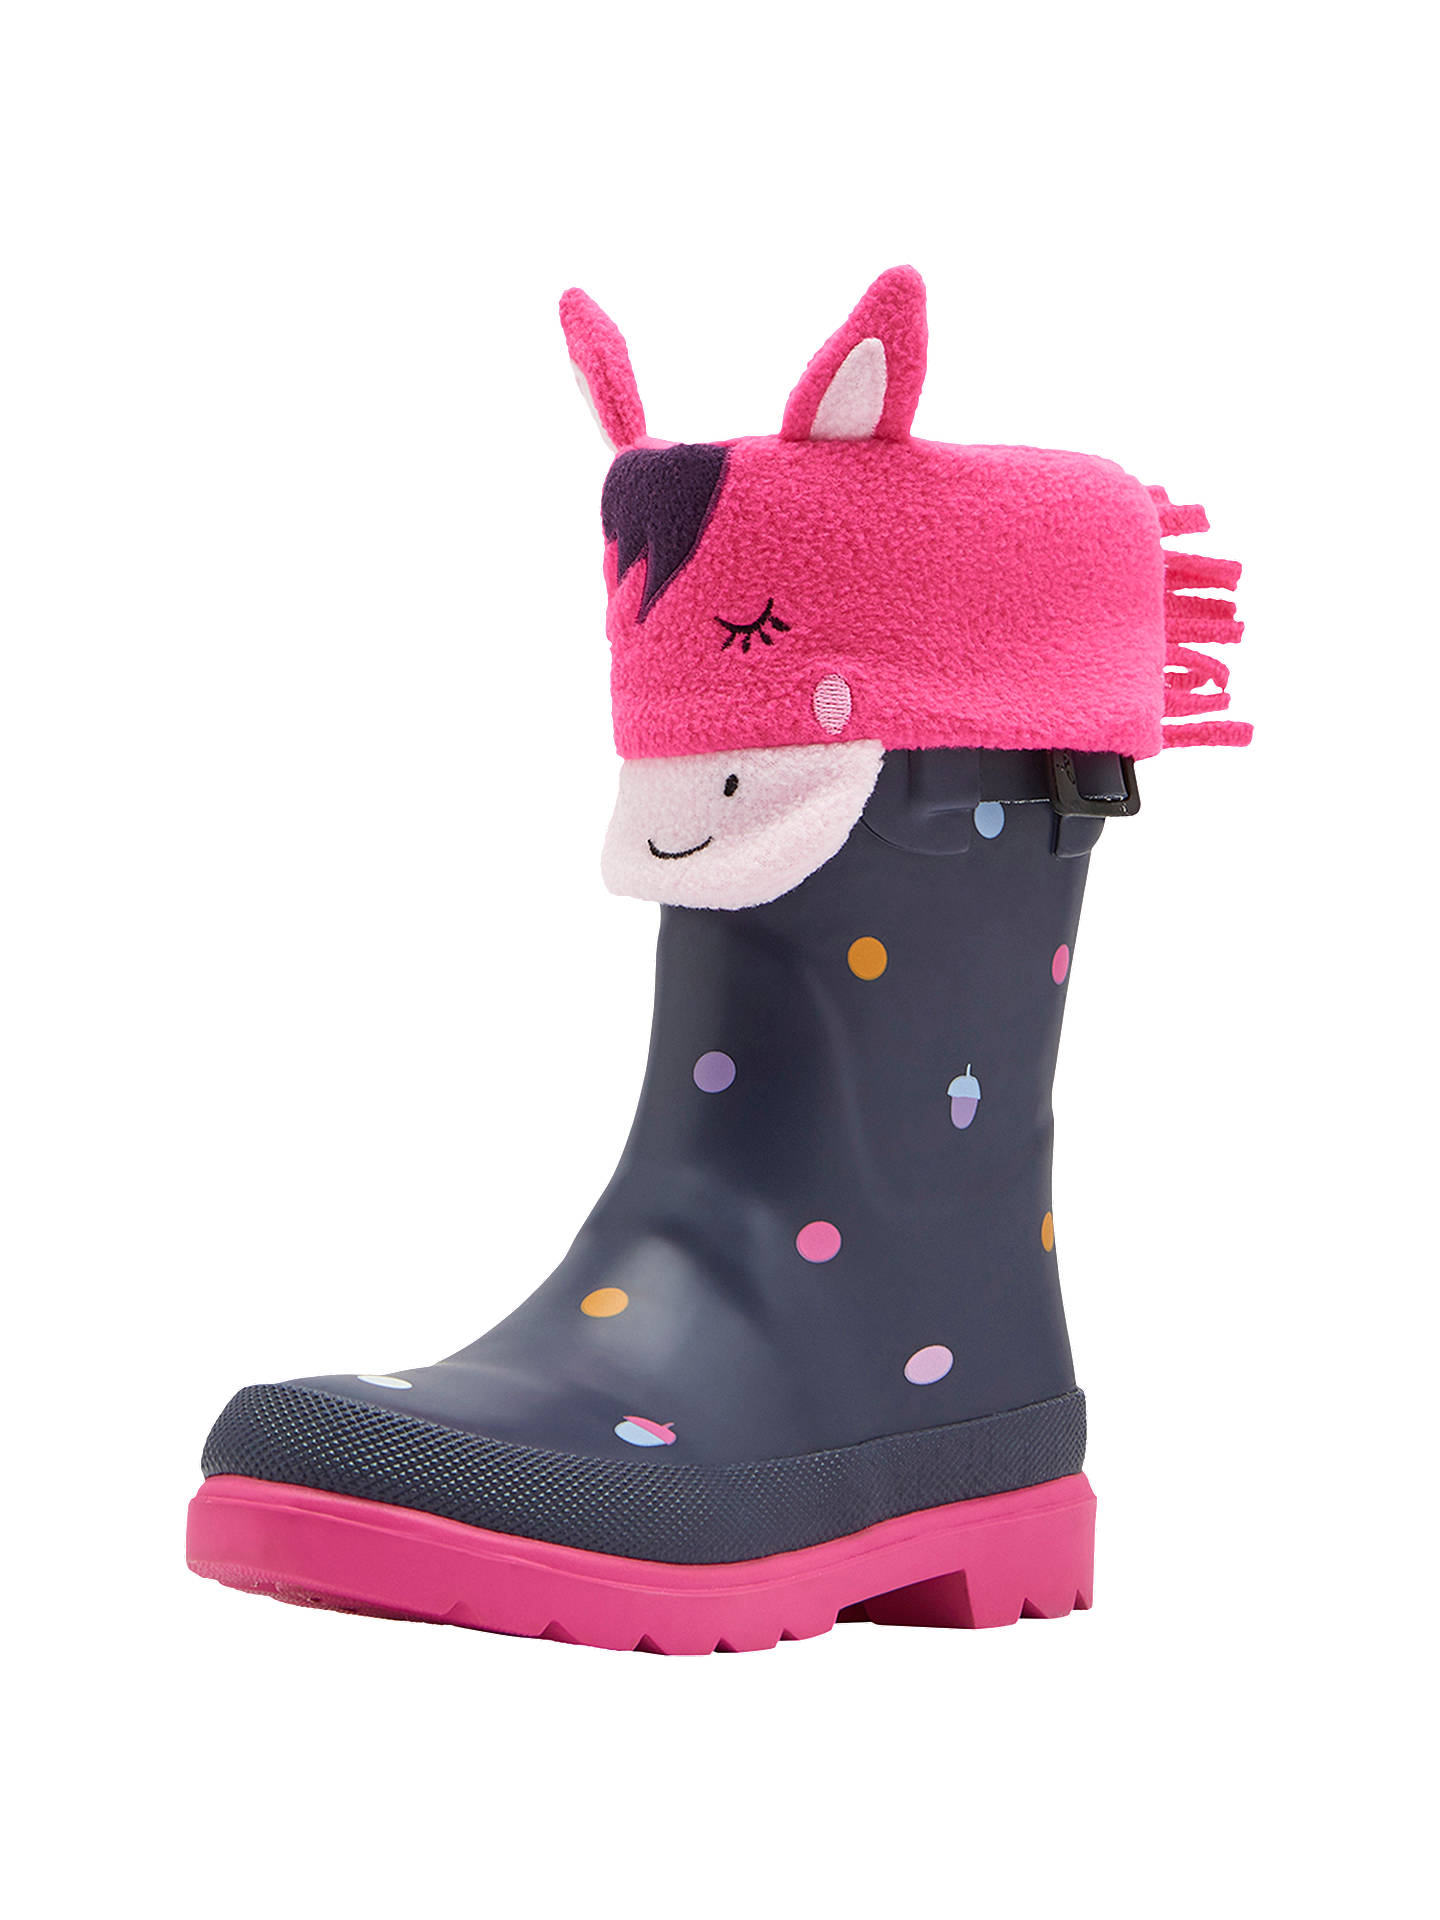 Buy Baby Joule Welly Socks, Pink, 12 Jnr-3 Online at johnlewis.com